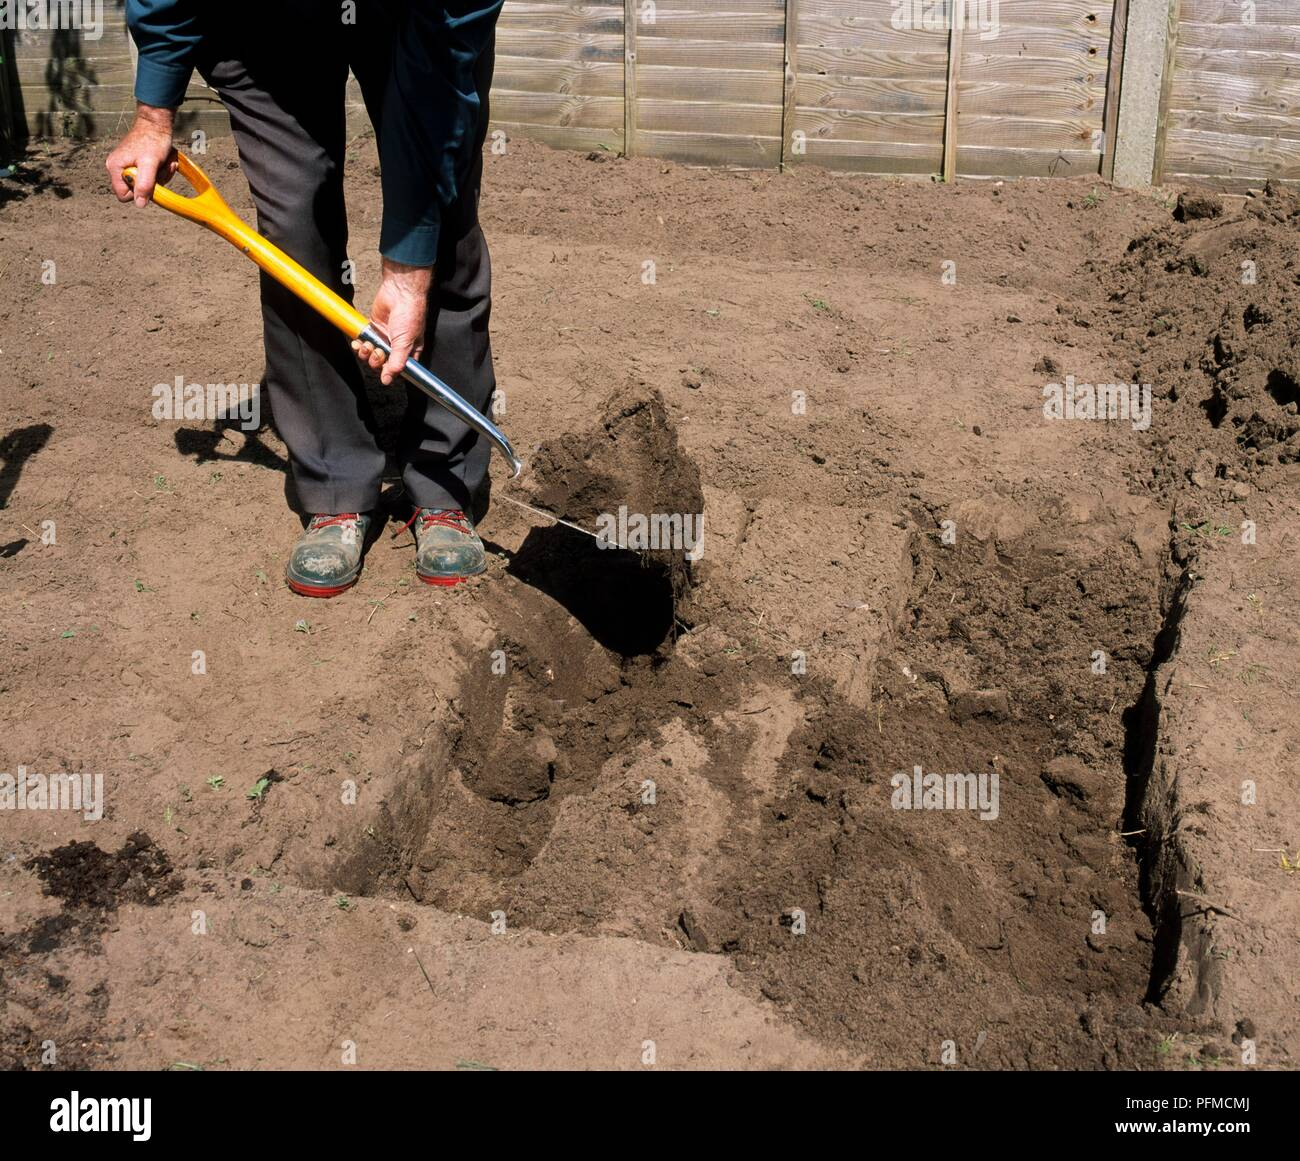 Man using spade to dig trench Stock Photo: 216193282 - Alamy